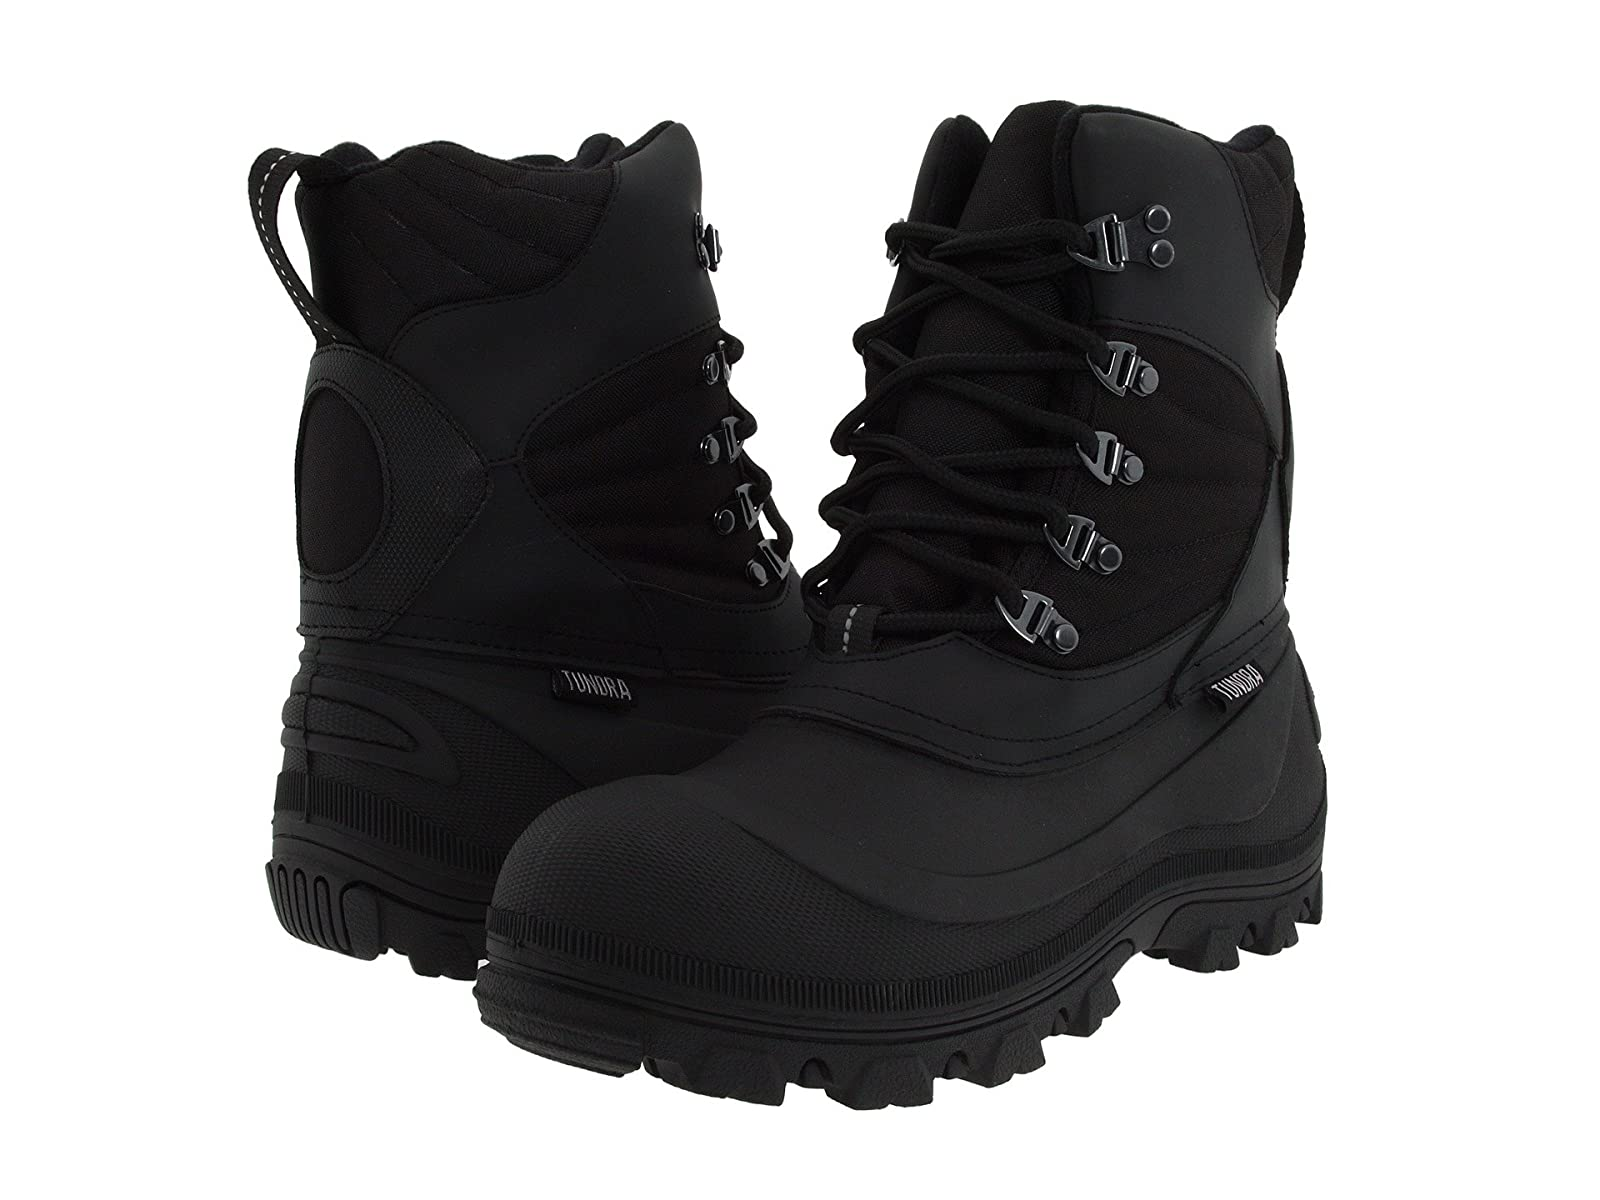 Tundra Boots RyanEconomical and quality shoes